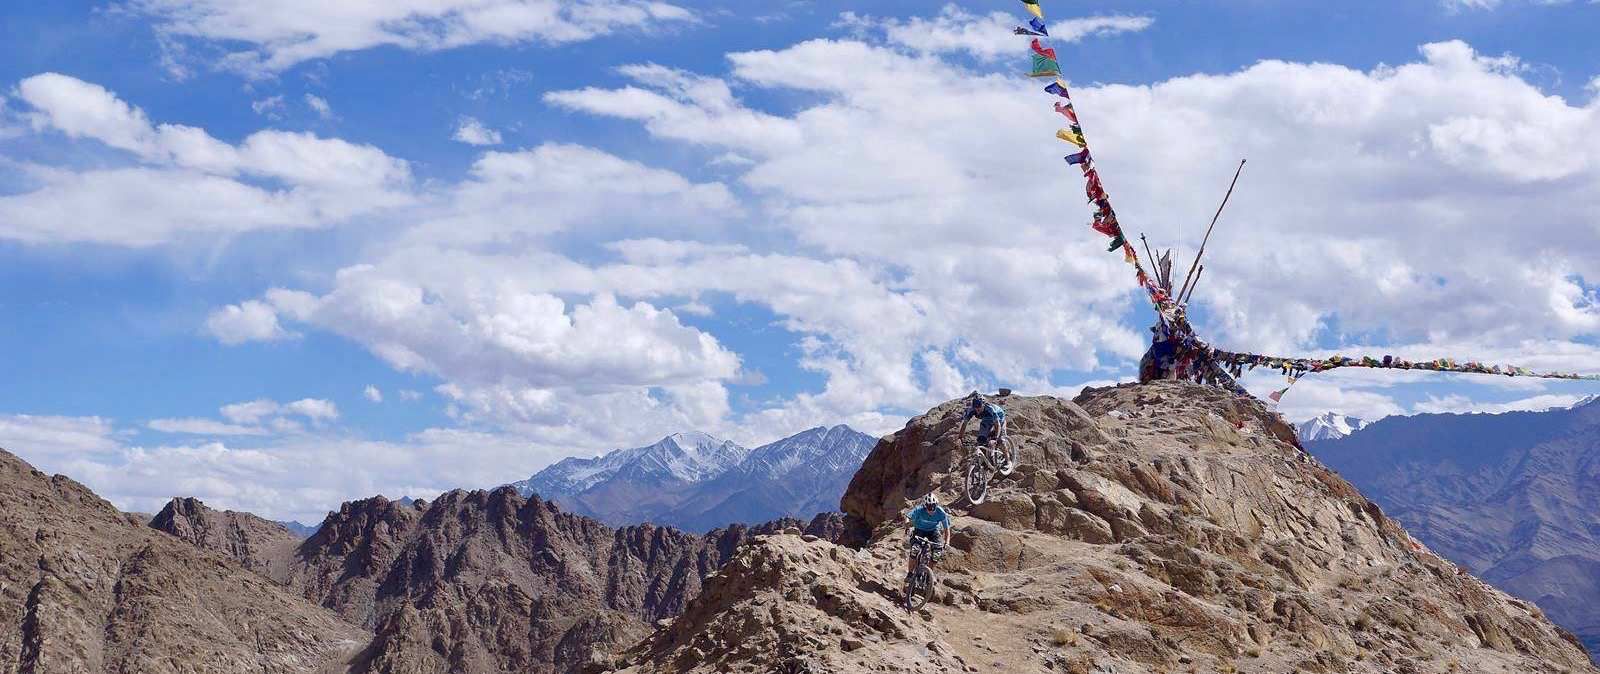 Himalaya – mountain biking at the roof of the world